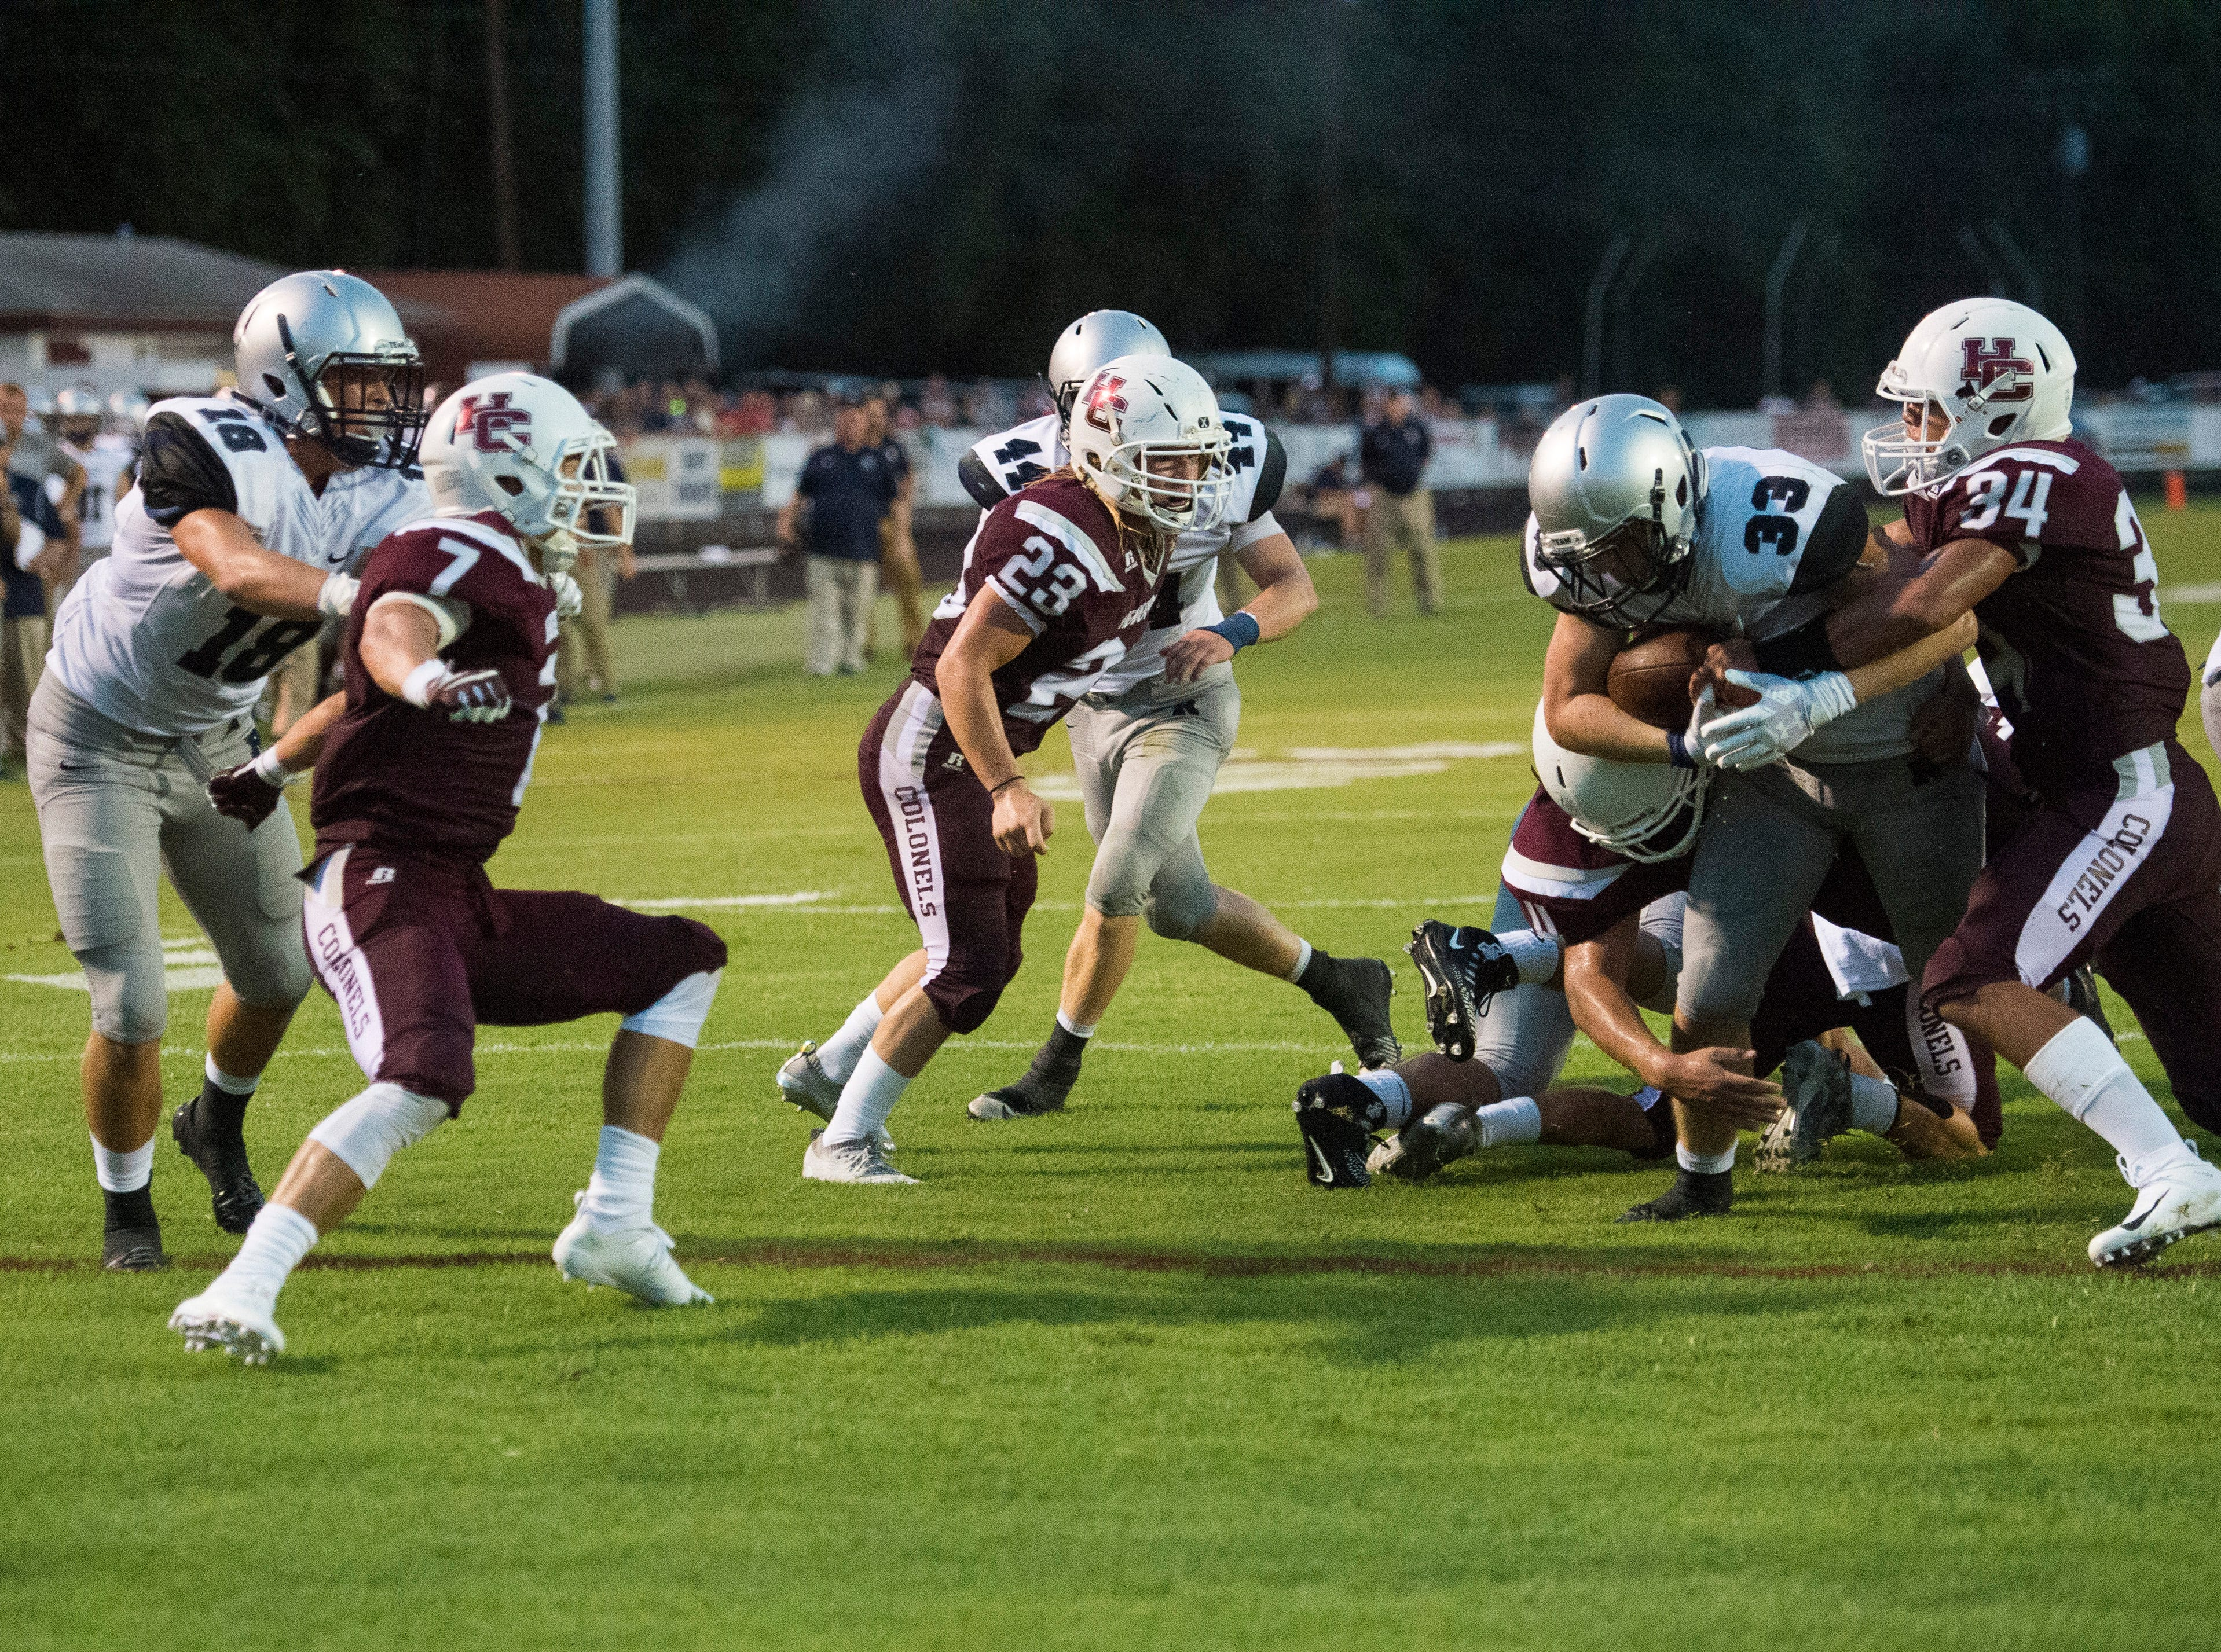 Henderson's Isaiah Fallen (34)  takes down the Panthers Reitz's Carter Schnarr (33) during the Reitz vs Henderson County game at Colonel Stadium Friday, August 17, 2018. The Panthers defeated the Colonels 41-35 in the season opening game.